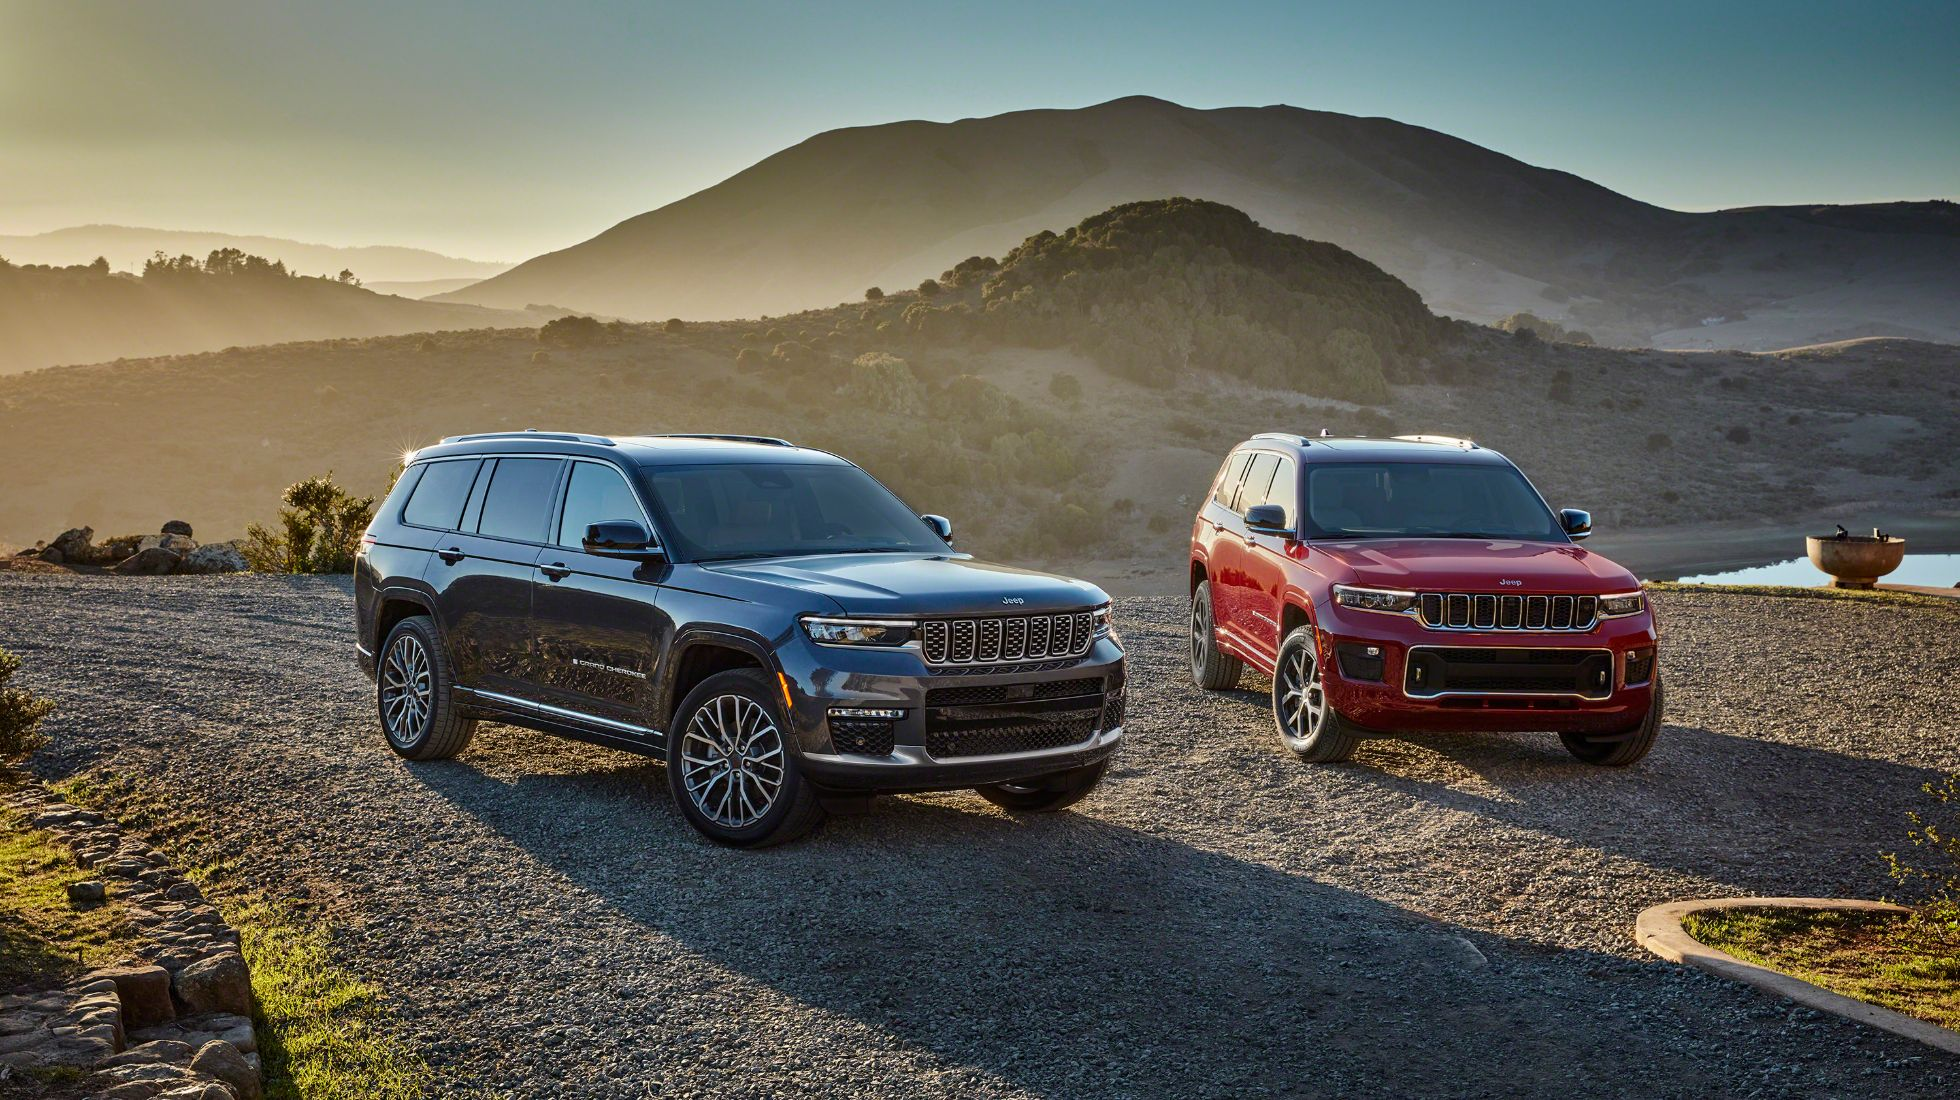 Jeep has unveiled its grandest Grand Cherokee yet